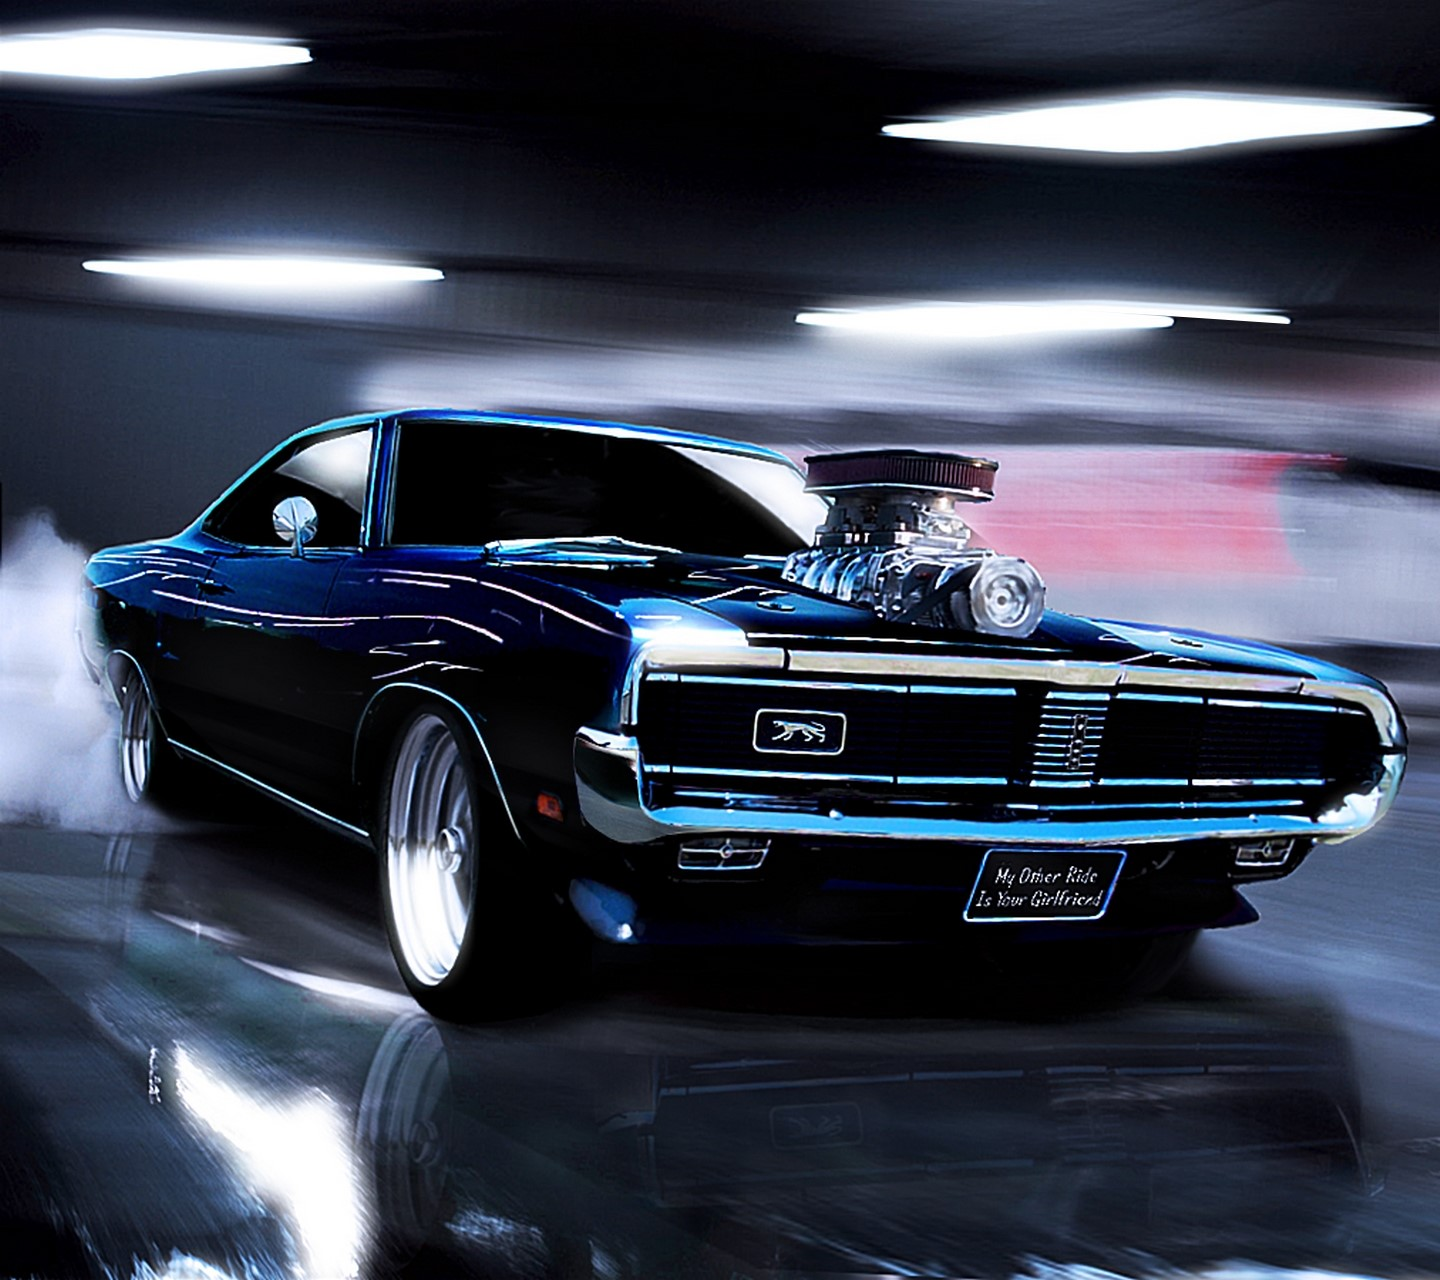 American Muscle wallpaper 9823661